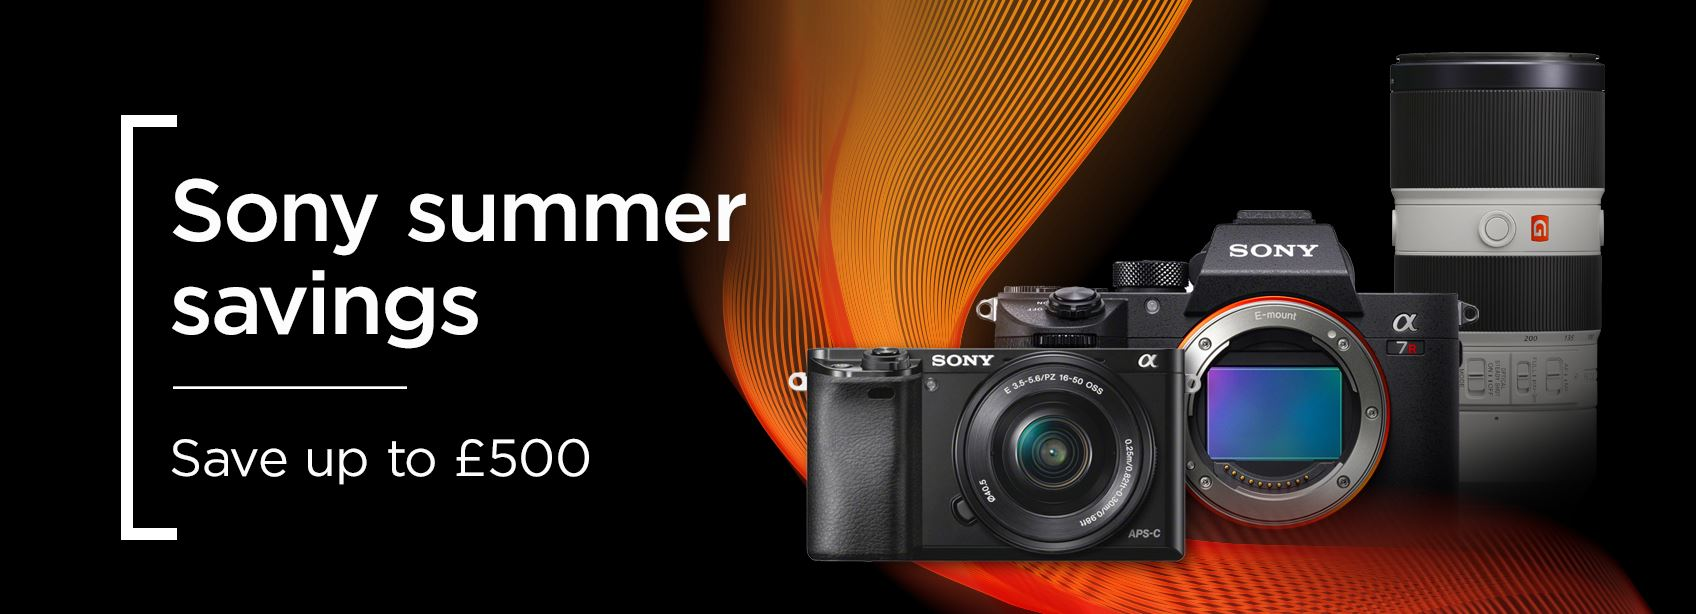 Sony summer savings - Save up to £500